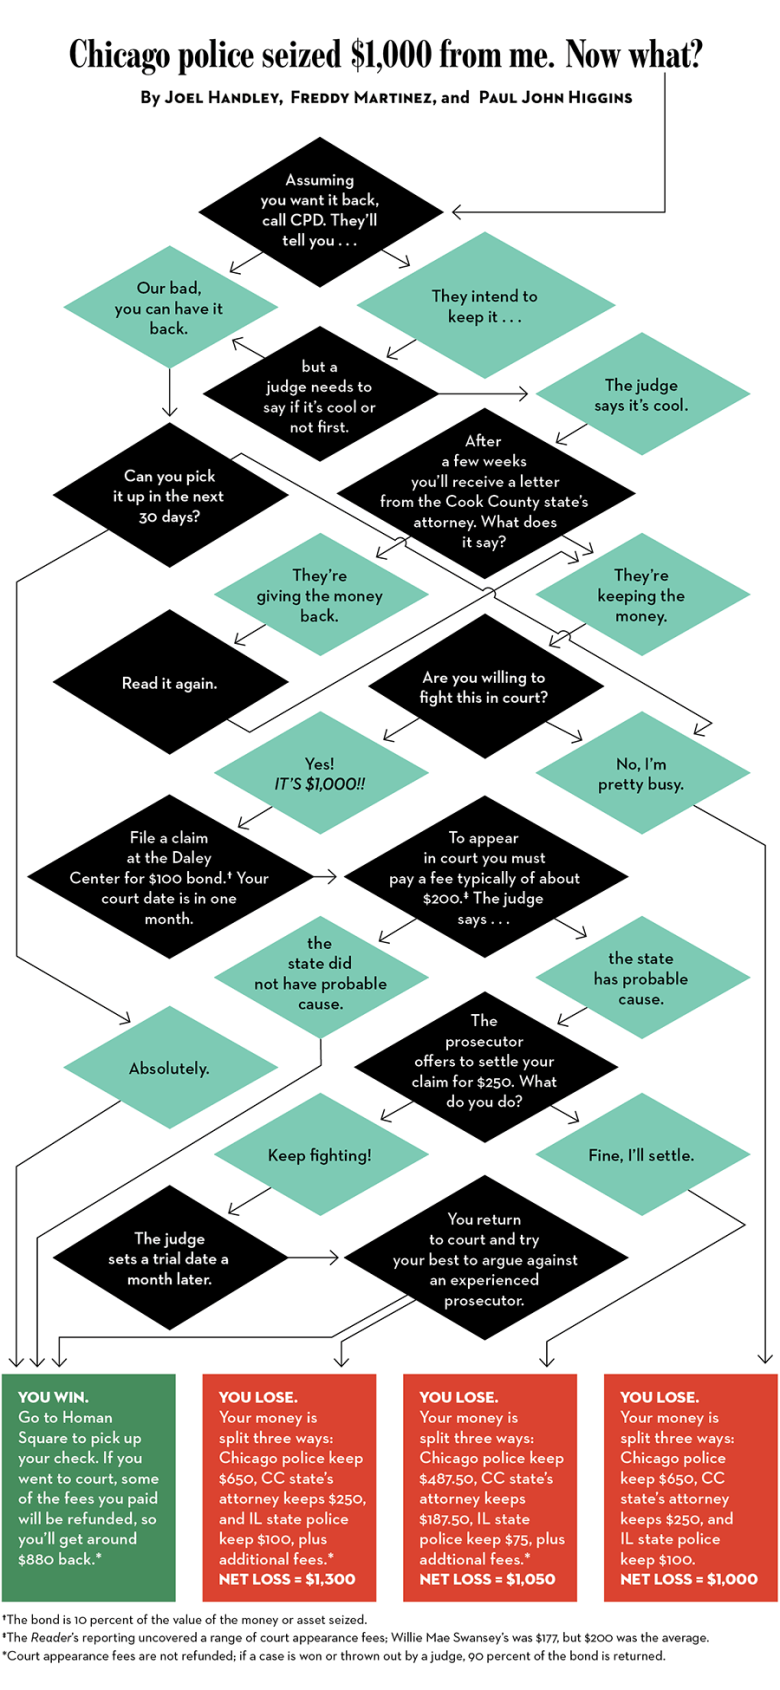 Chicago police seized $1,000 from me. Now what? [Image is a flowchart]